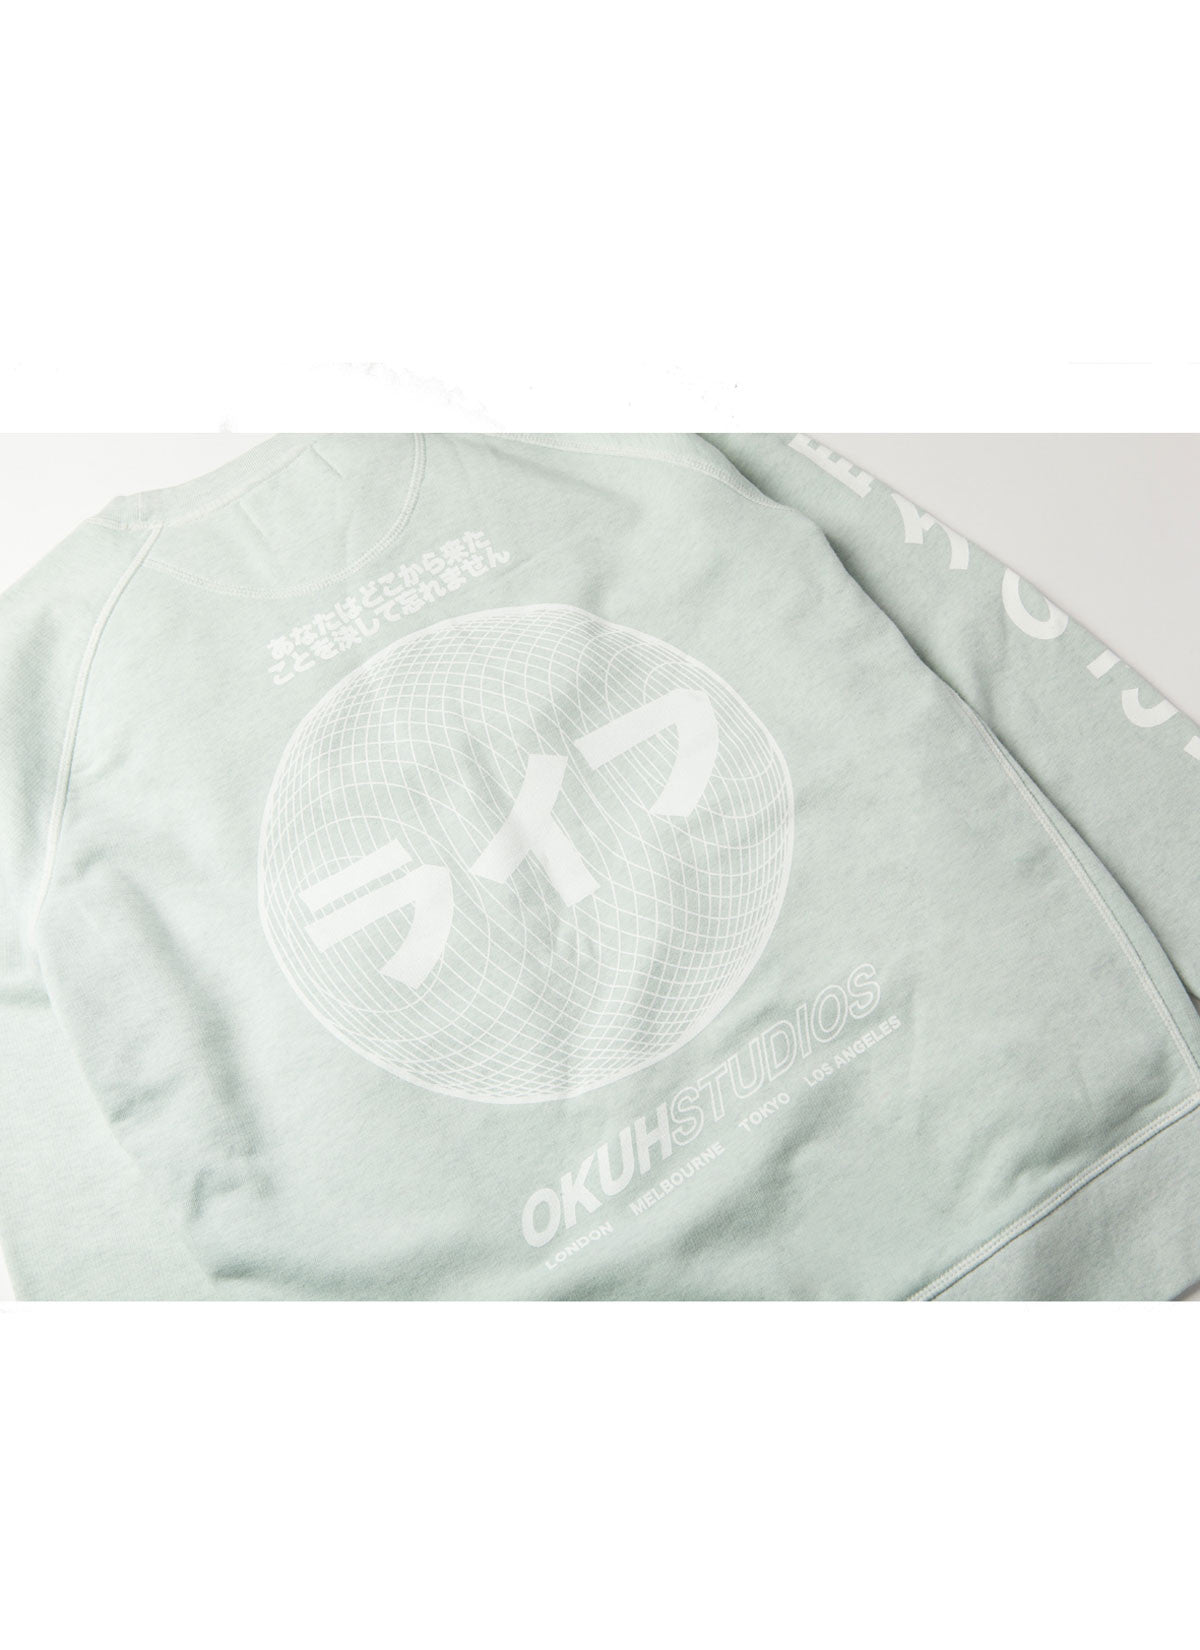 Mint Sphere Sweatshirt by Okuh Studios, mens streetwear fashion brand, Back  close up